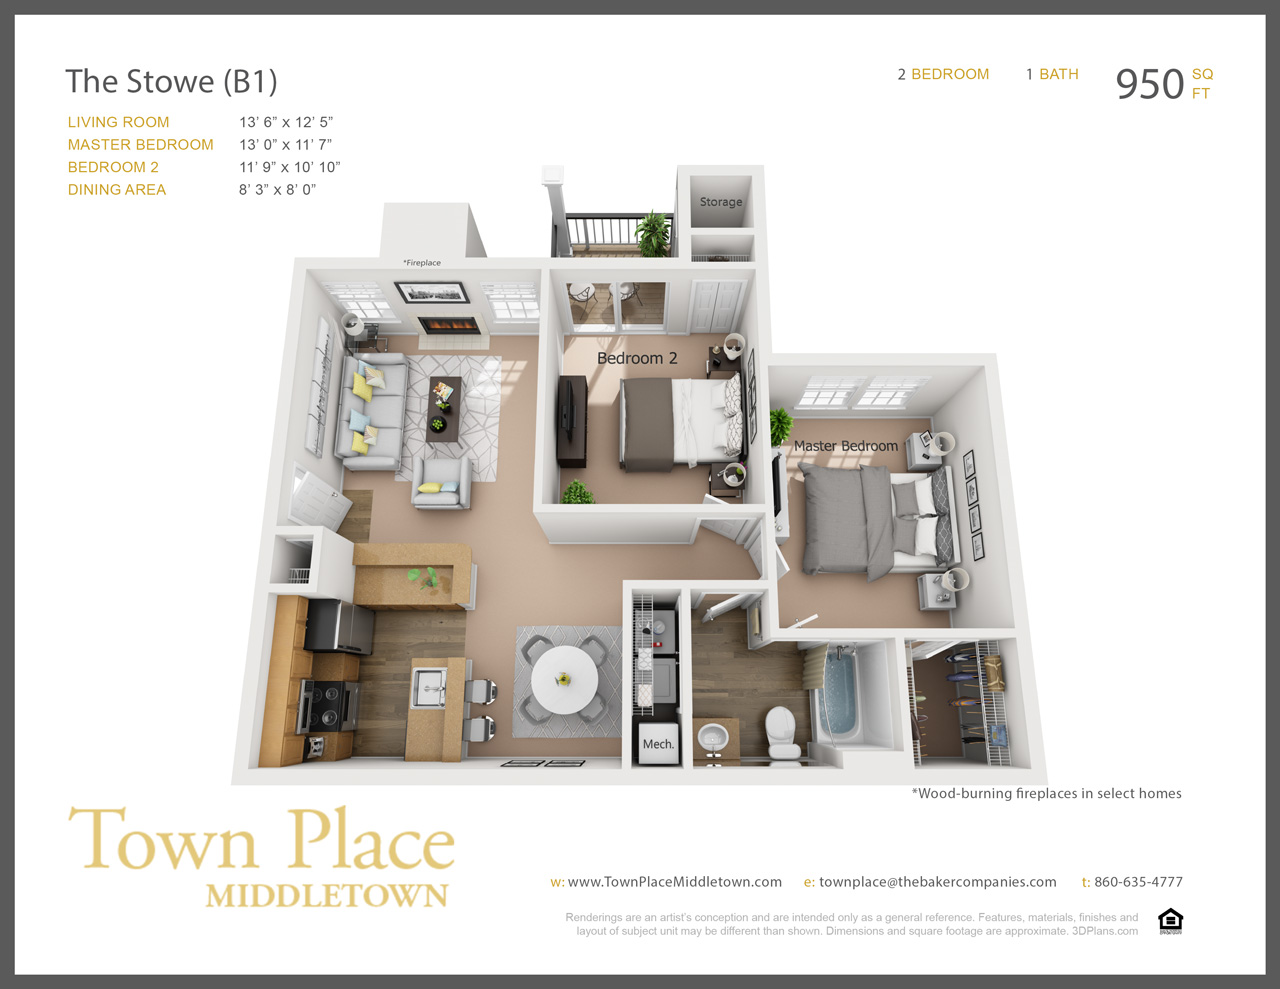 Town-Place-Middletown_The-Stowe.jpg